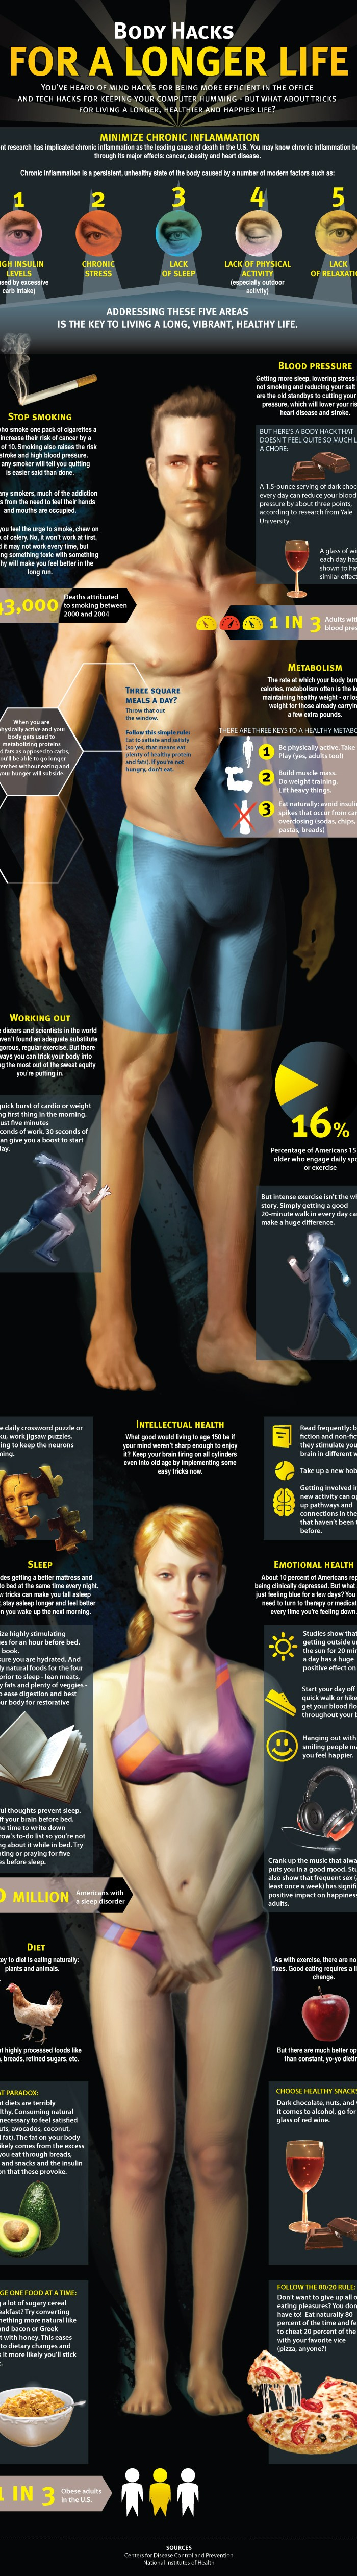 Body Hacks For A Longer Life - Infographic